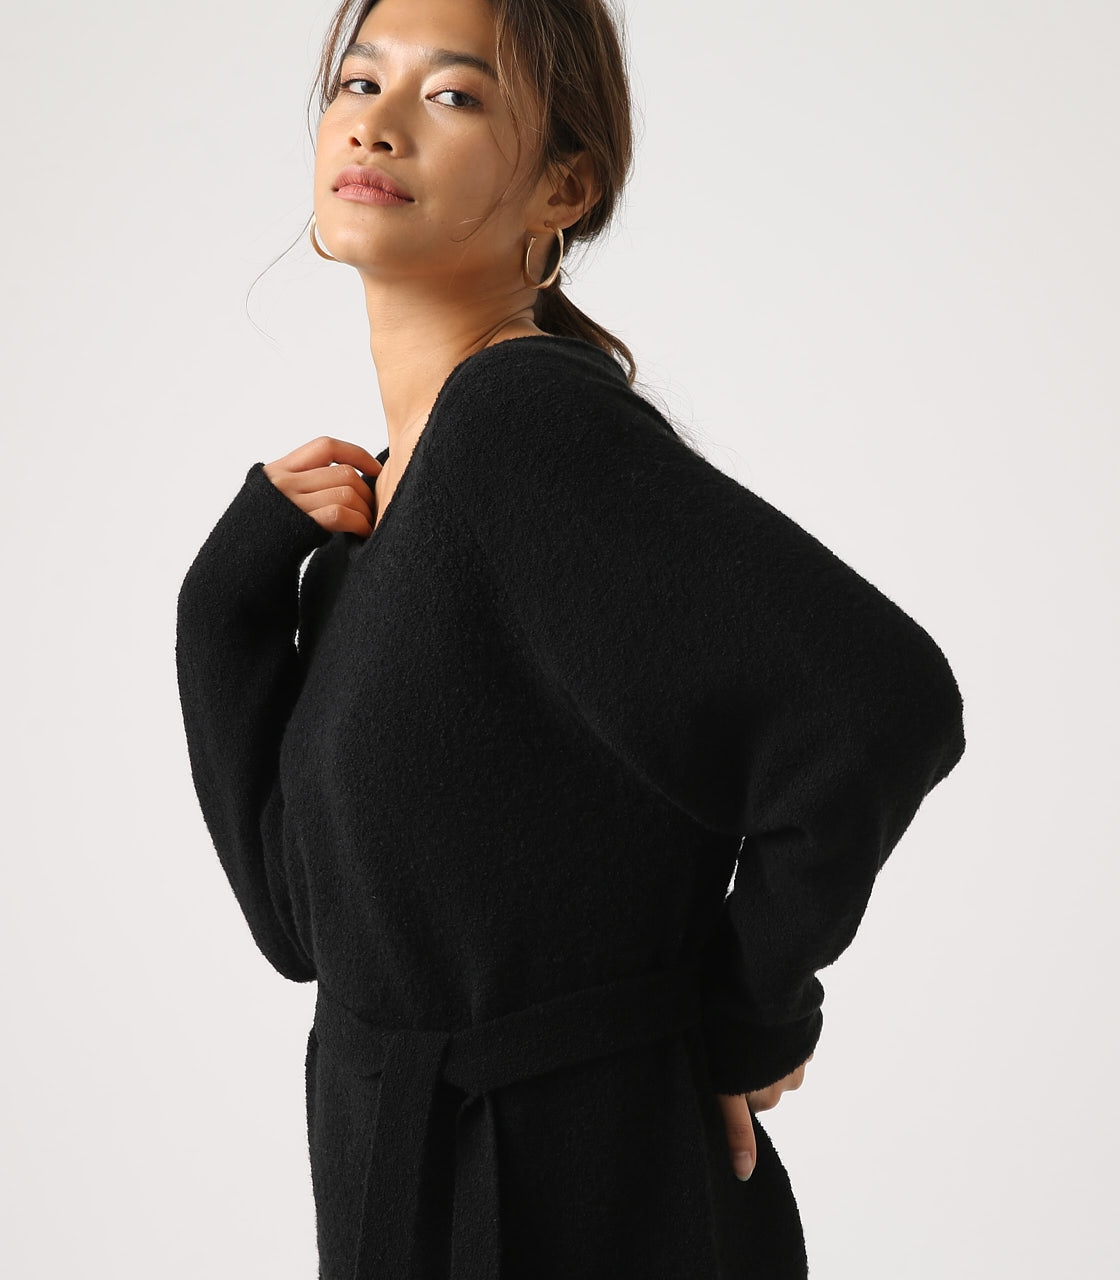 BELT SET V NECK KNIT TUNIC 詳細画像 BLK 2